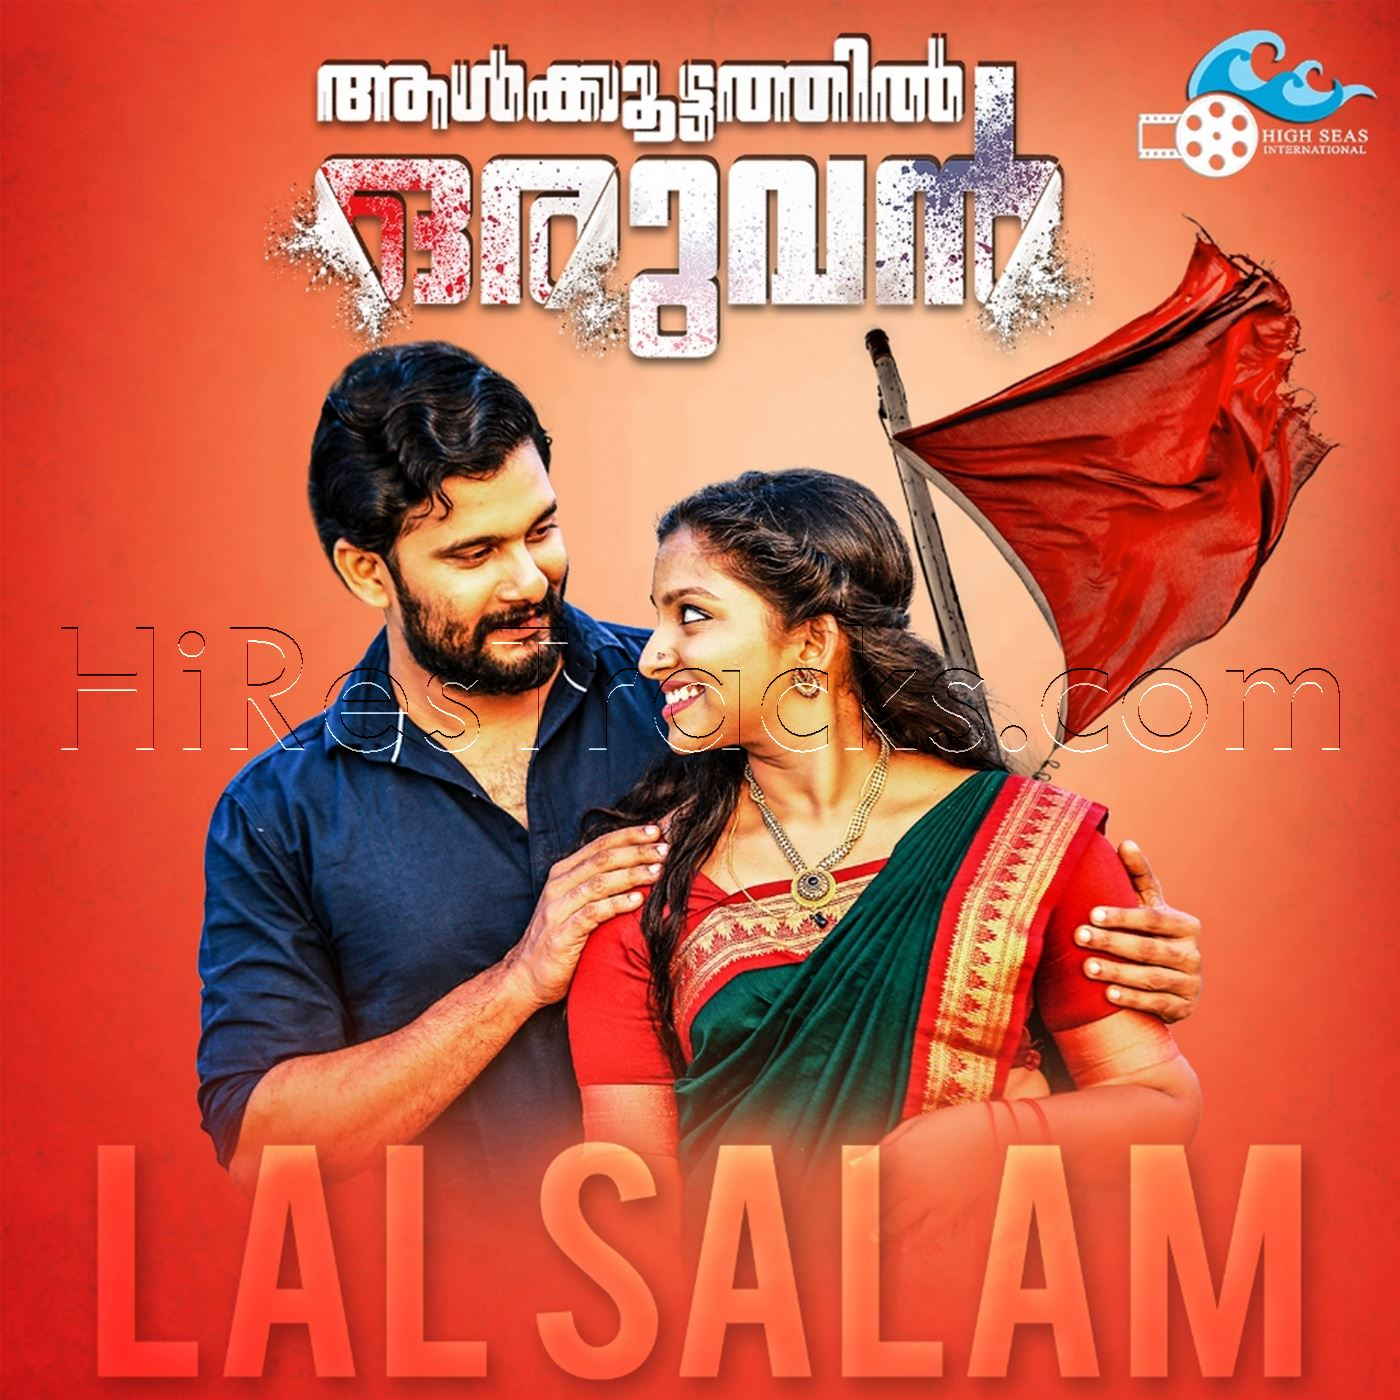 Lal Salam (From Aalkoottathil Oruvan) (2019)